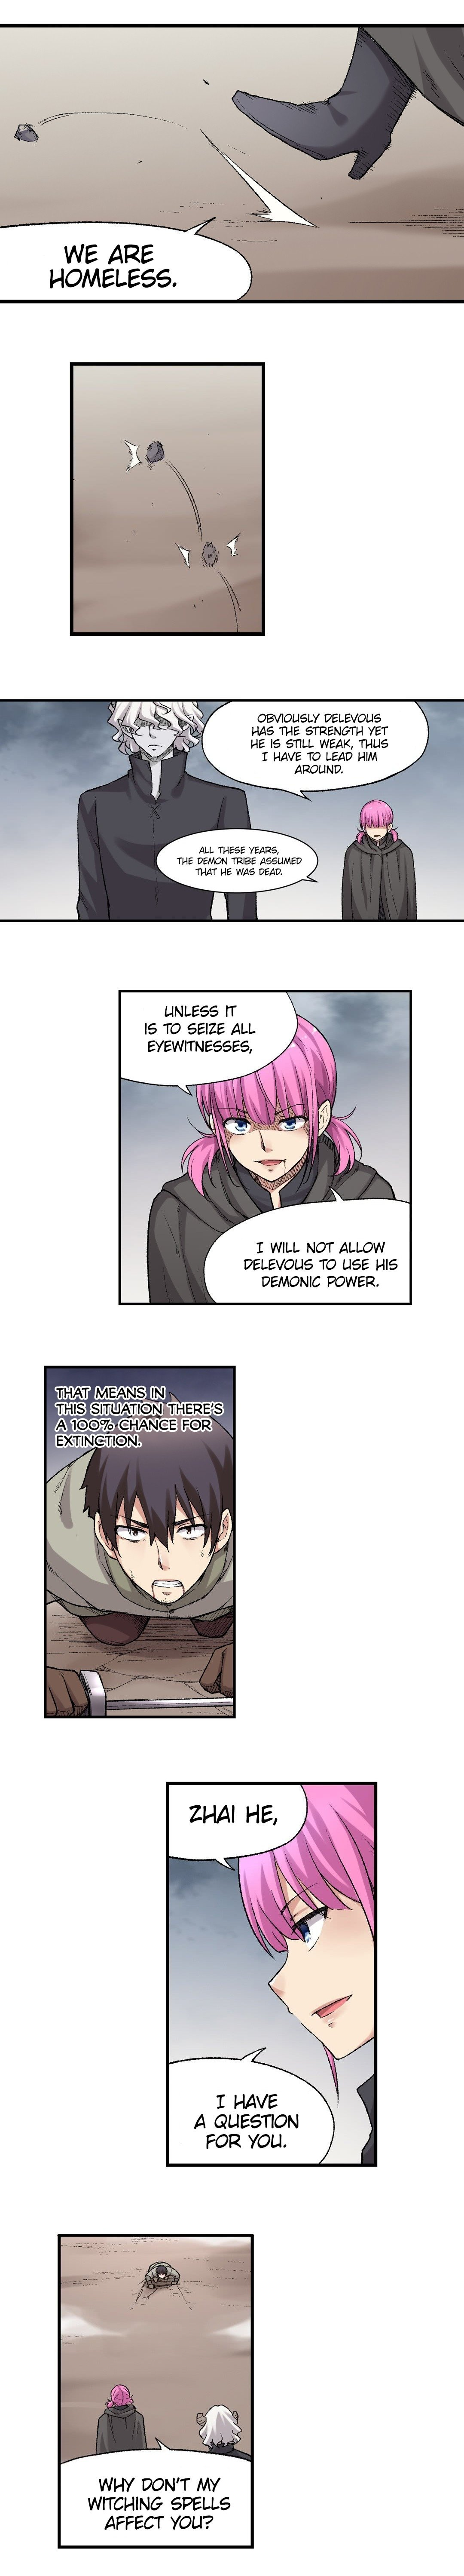 Manga Because I'm An Uncle who Runs A Weapon Shop - Chapter 66 Page 4